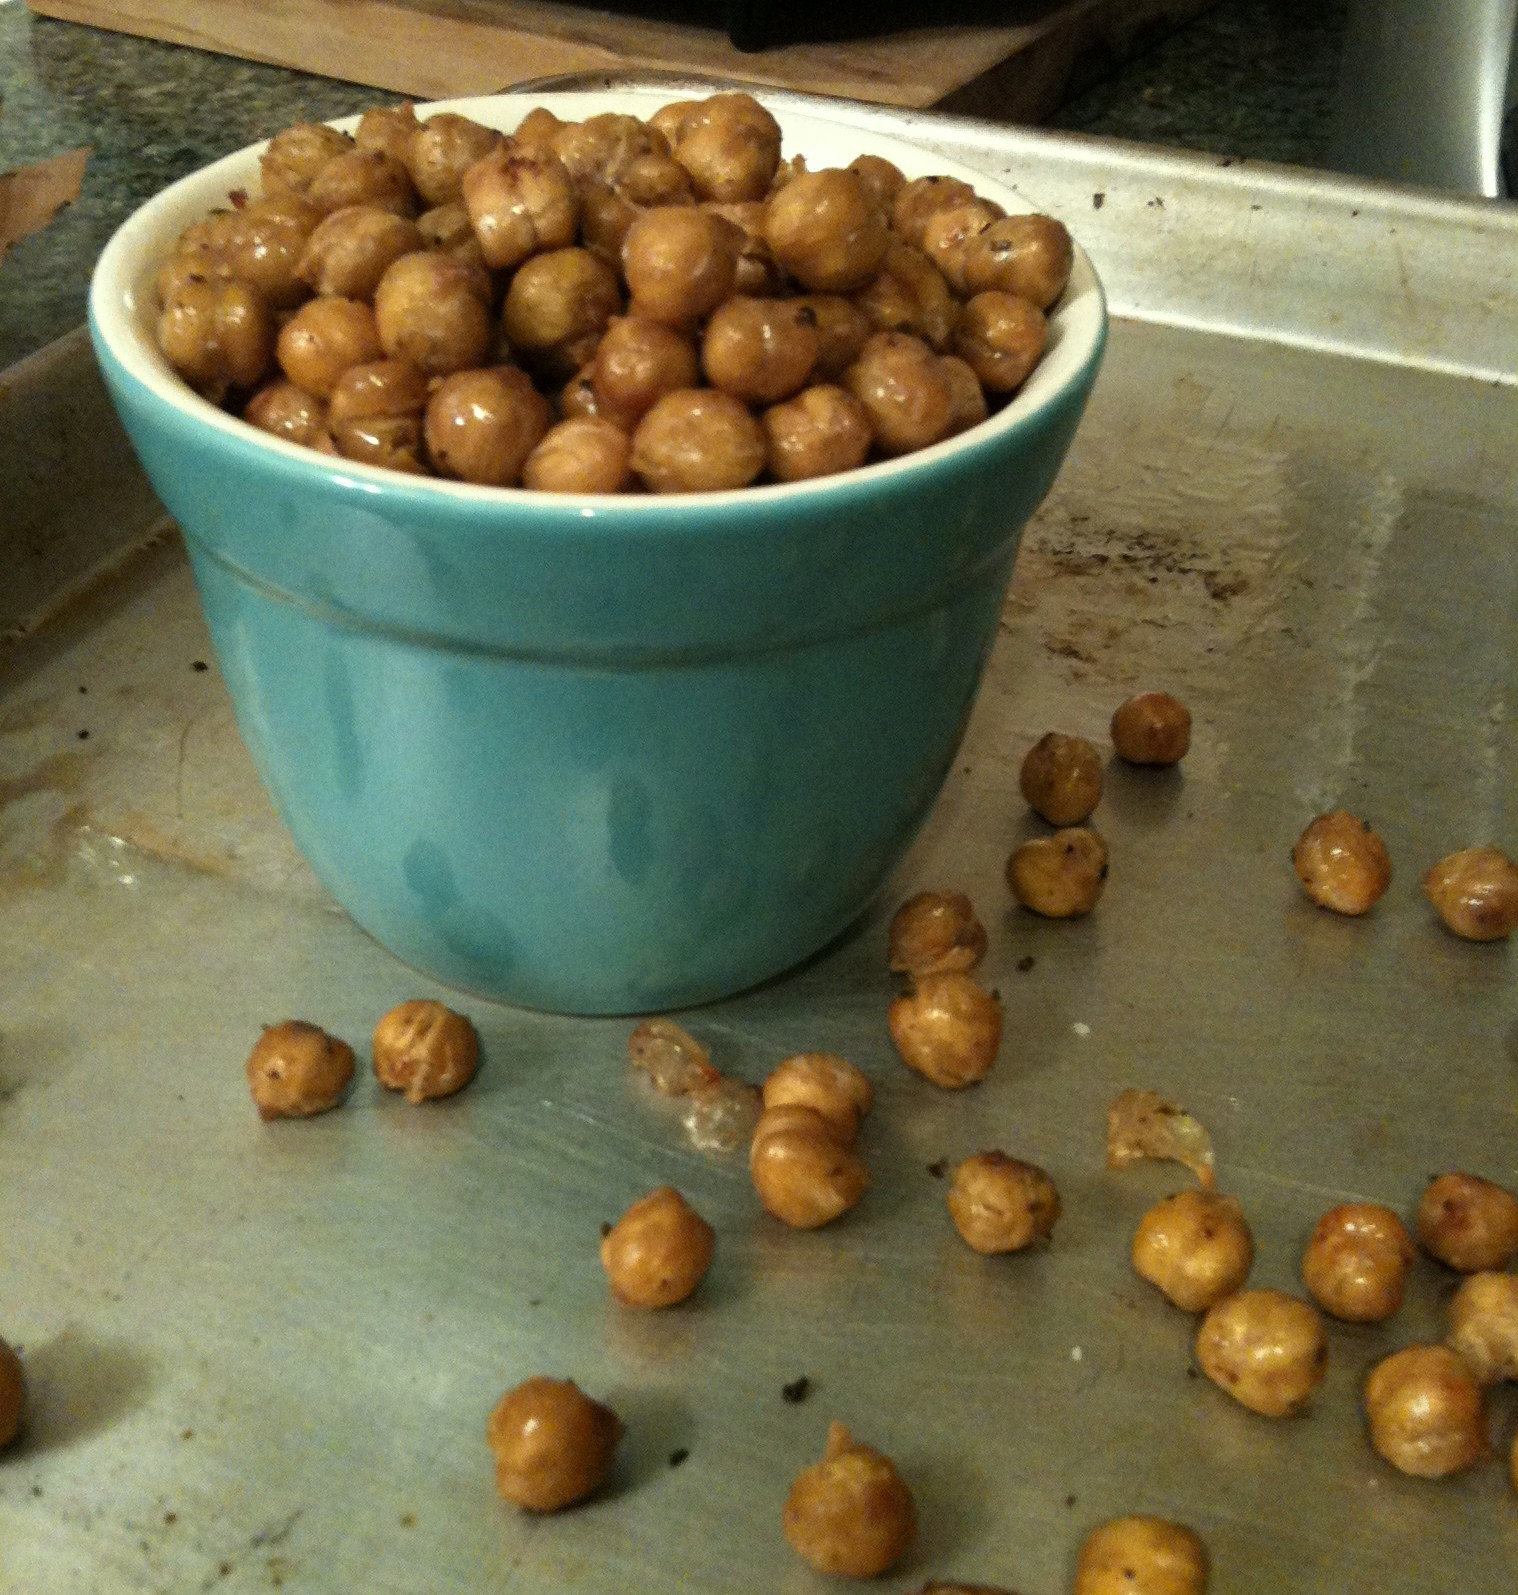 ... Family Recipe Journal: Roasted Garbanzo beans (Chickpea poppers